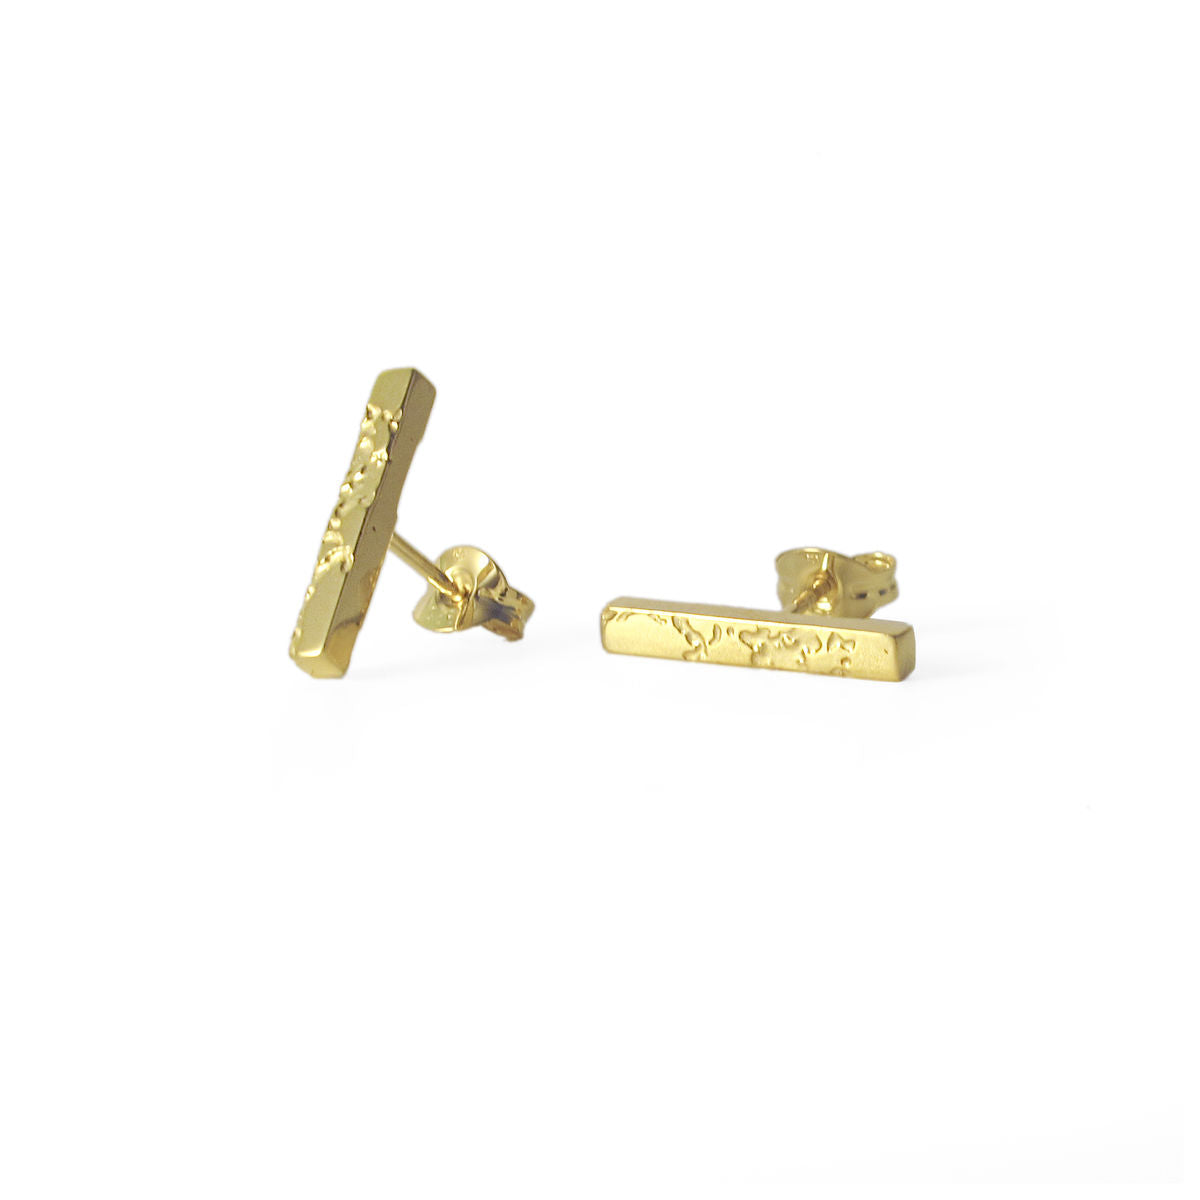 SKIN TEXTURED BAR STUD EARRINGS - GOLD PLATED SILVER